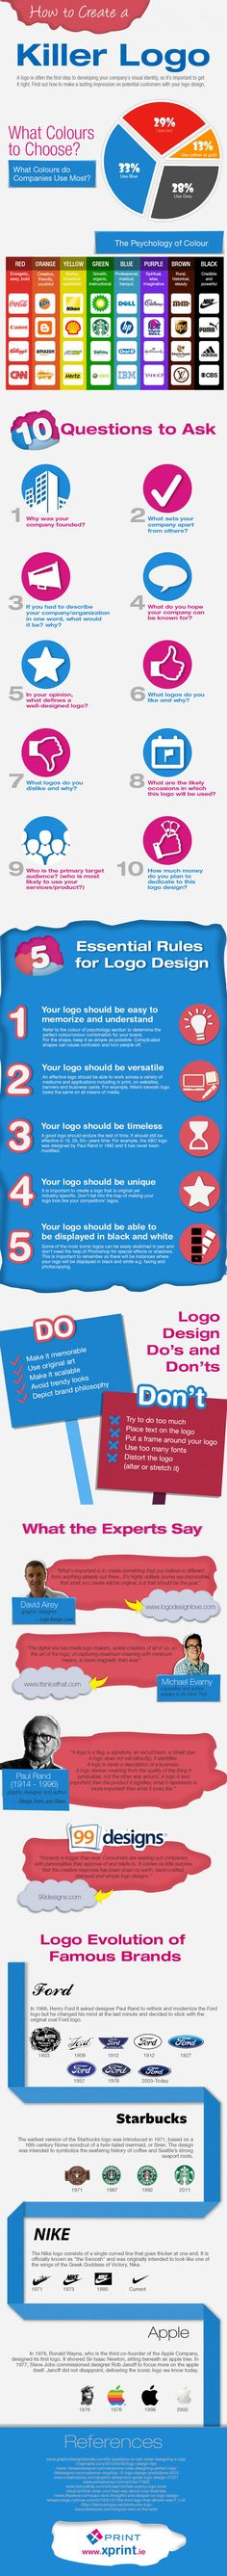 How to Create a Killer Logo [Infographic]